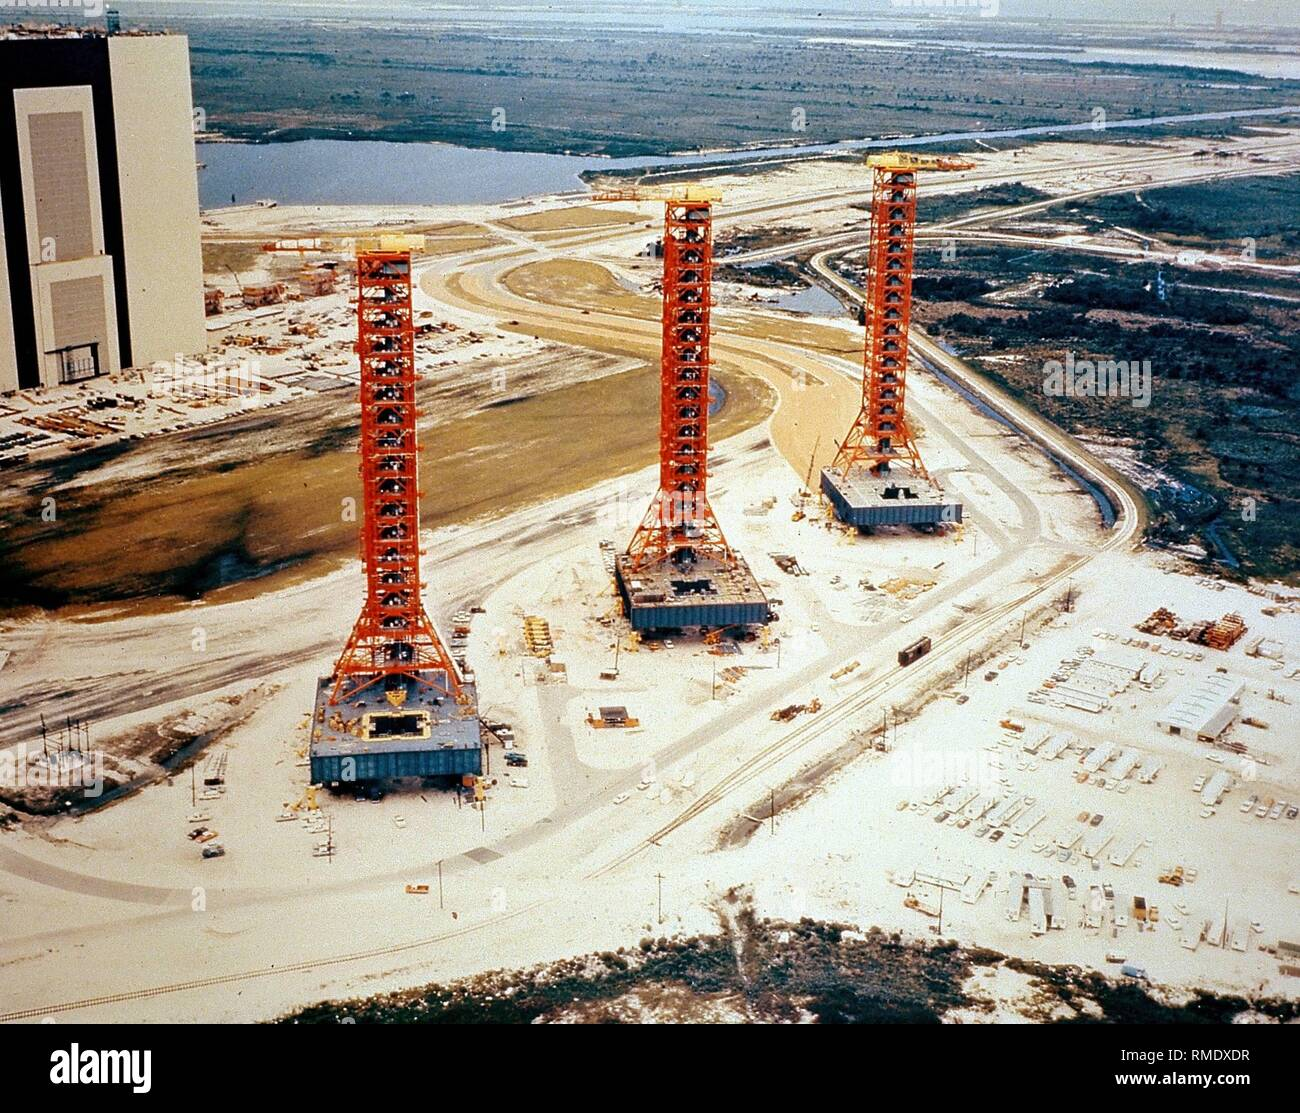 View of the John F. Kennedy Space Center spacecraft launch site with the three mobile rocket launch pads used for the Apollo program. On the left in the background, the Vehicle Assembly Building for spacecrafts. Undated photo, probably from the 1980s. - Stock Image